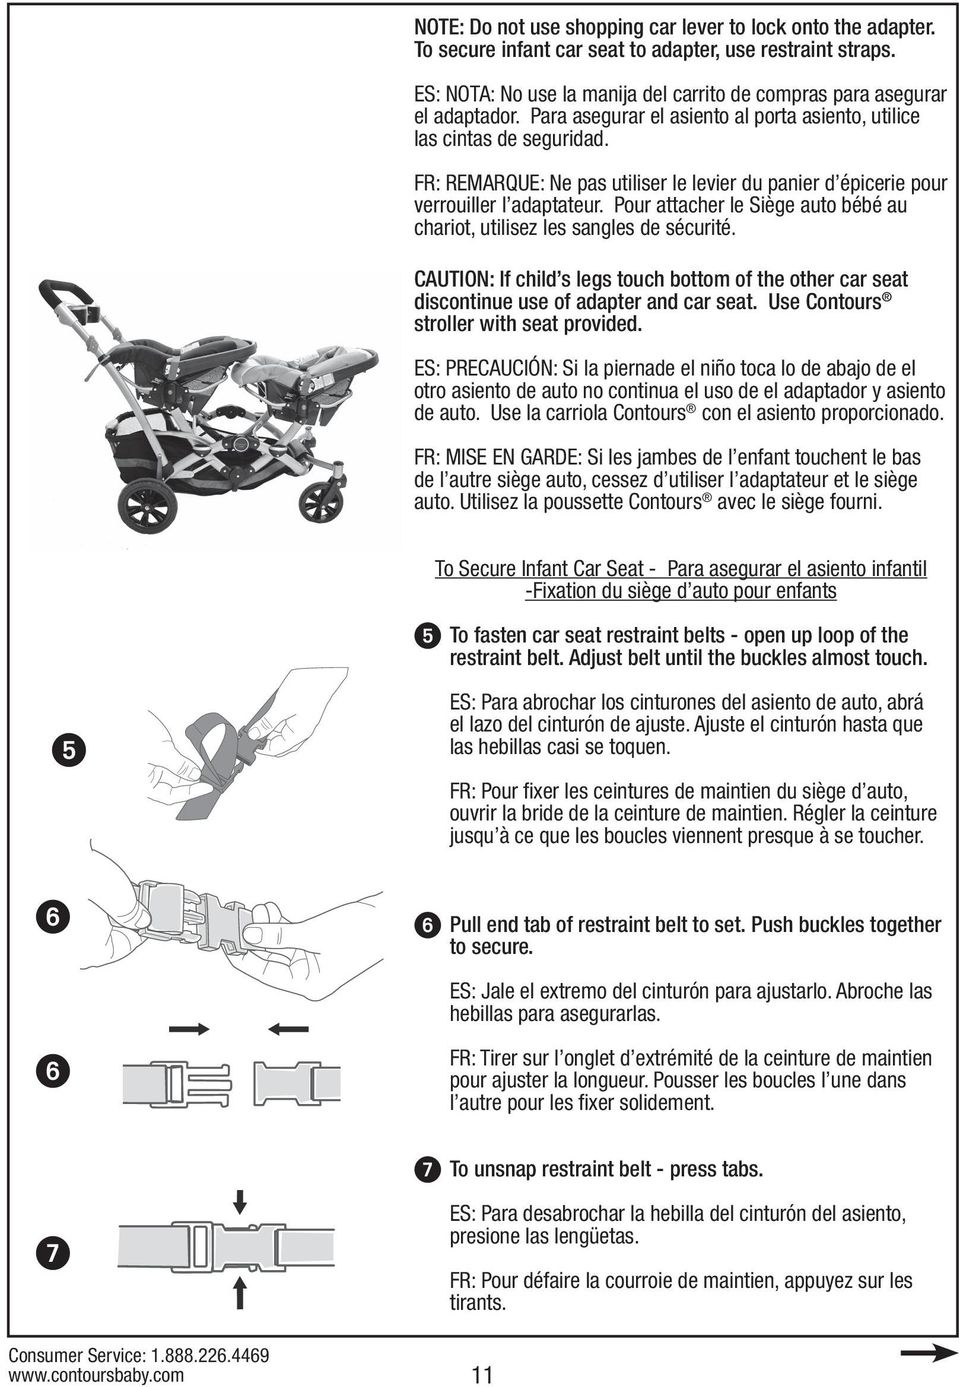 Pour attacher le Siège auto bébé au chariot, utilisez les sangles de sécurité. CAUTION: If child s legs touch bottom of the other car seat discontinue use of adapter and car seat.